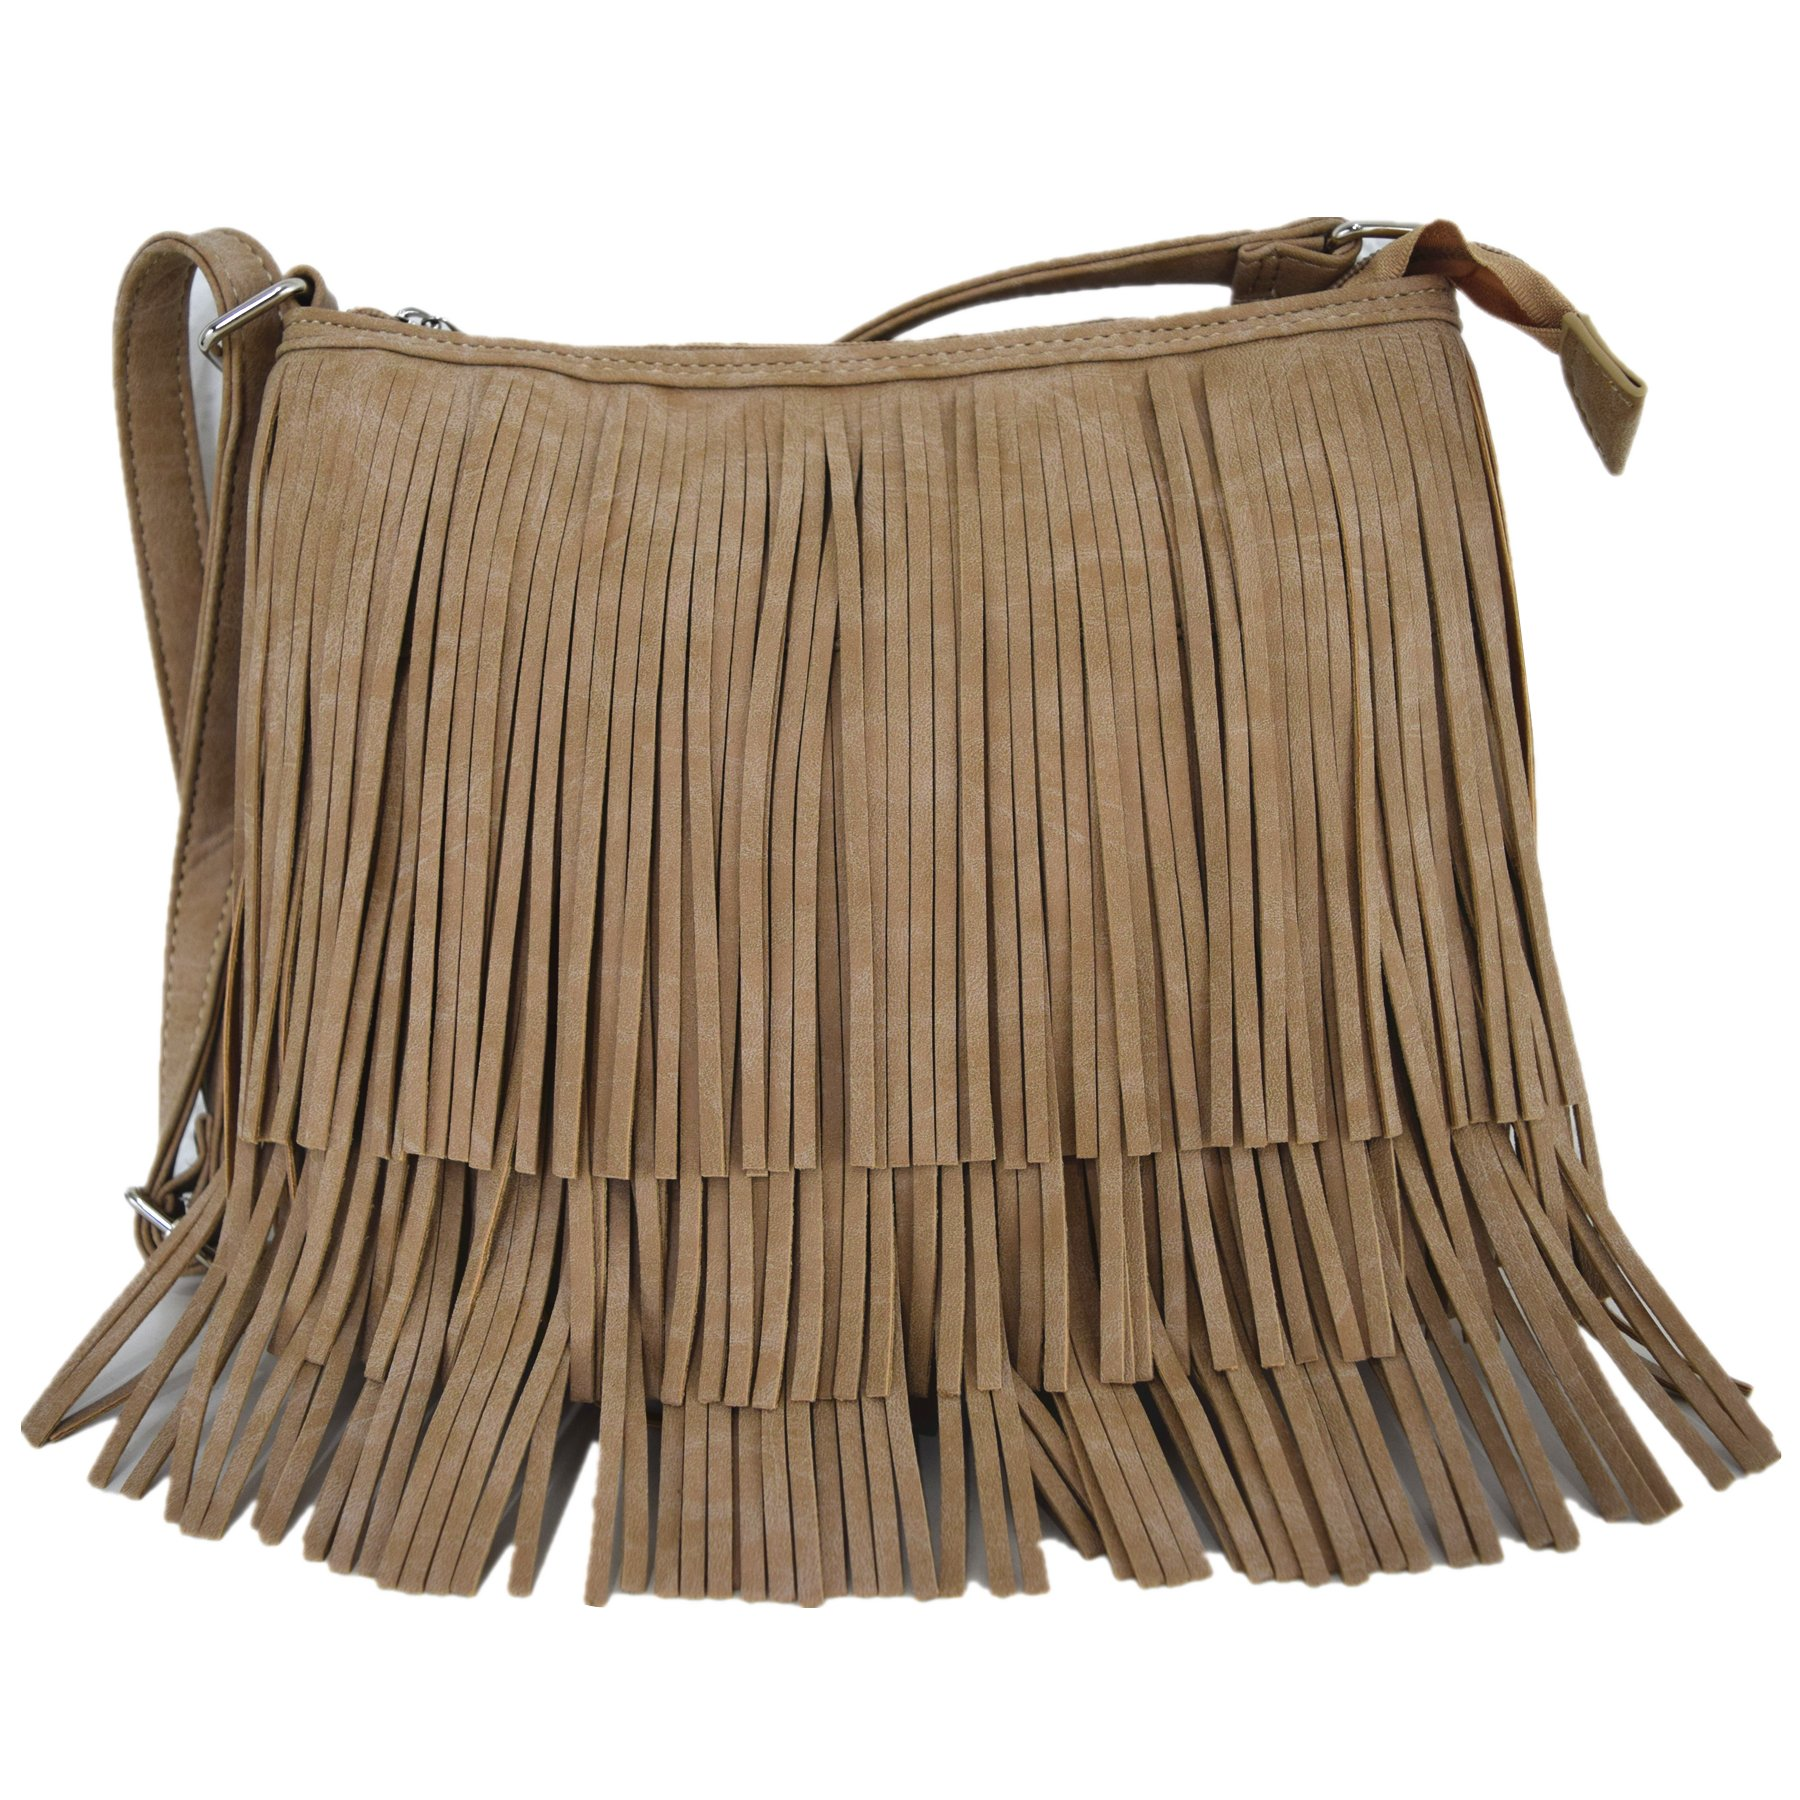 Western Cowgirl Style Fringe Cross Body Handbags Concealed Carry Purse Country Women Single Shoulder Bags (Tan)